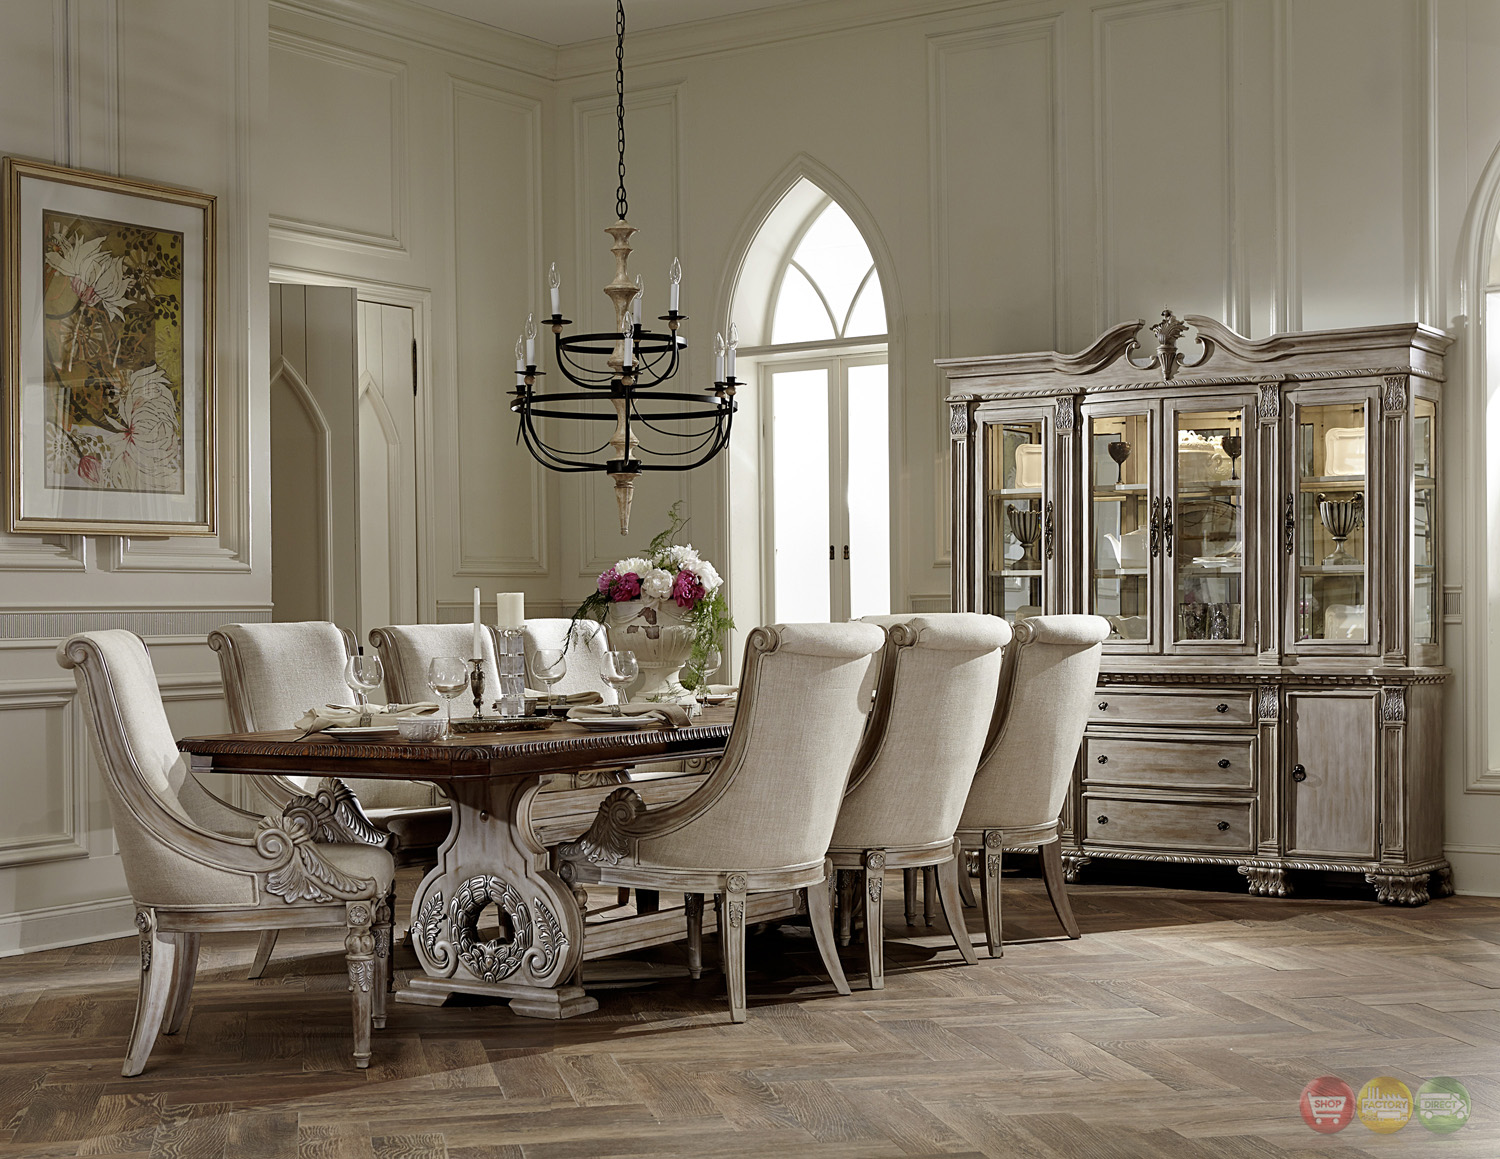 elegant dining room chairs how to reupholster orleans ii white wash traditional 7pc formal